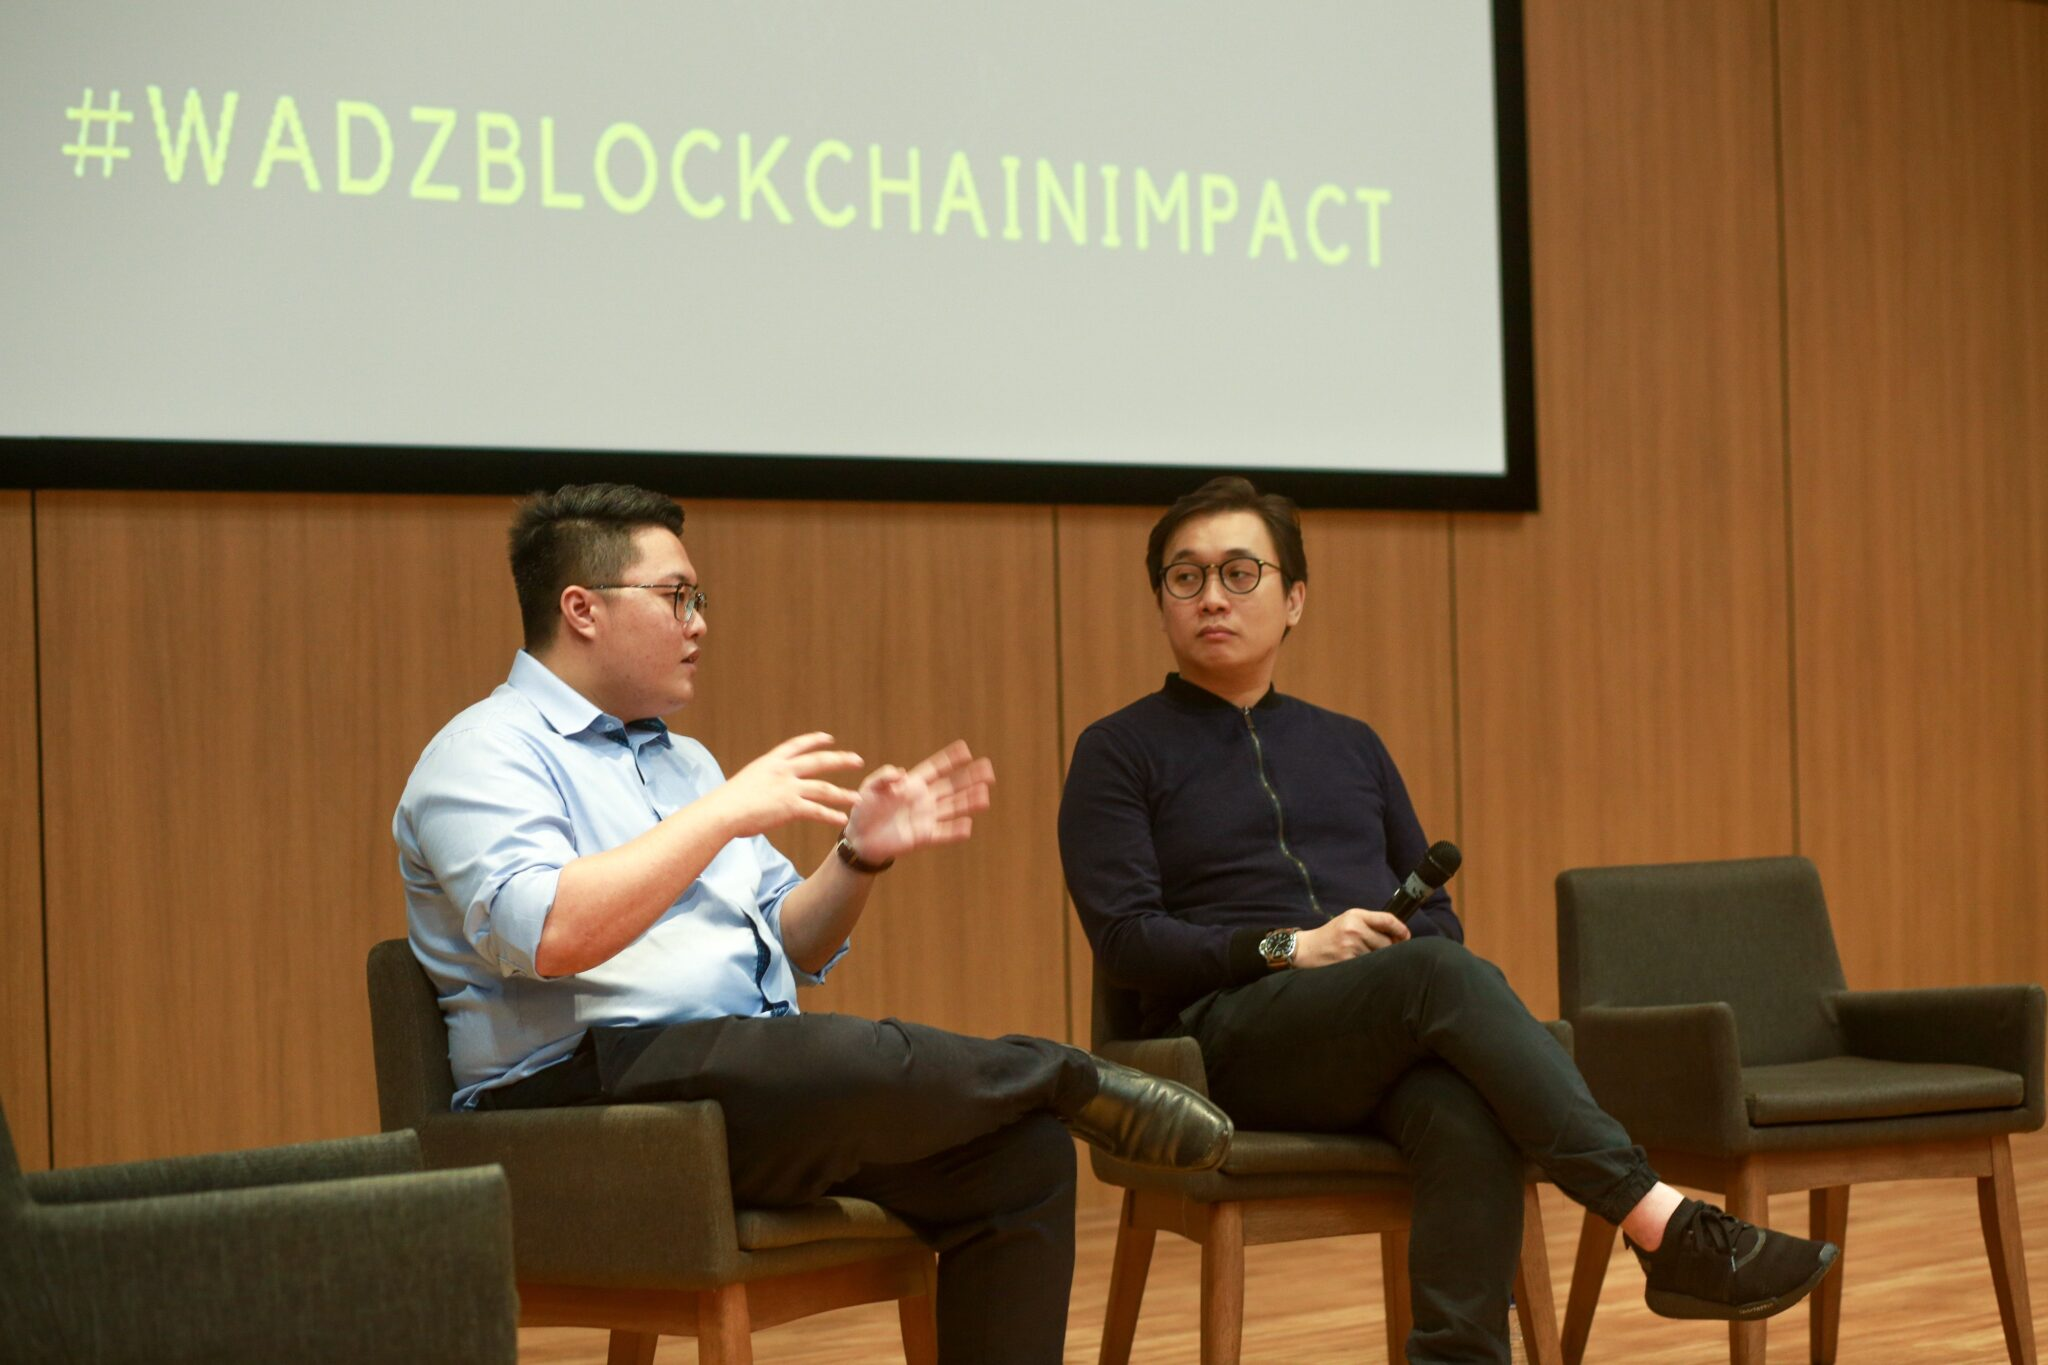 """, """"Looking at Blockchain using a different lens"""": Anndy Shared at Panel Discussion, Blockchain Adviser for Inter-Governmental Organisation 